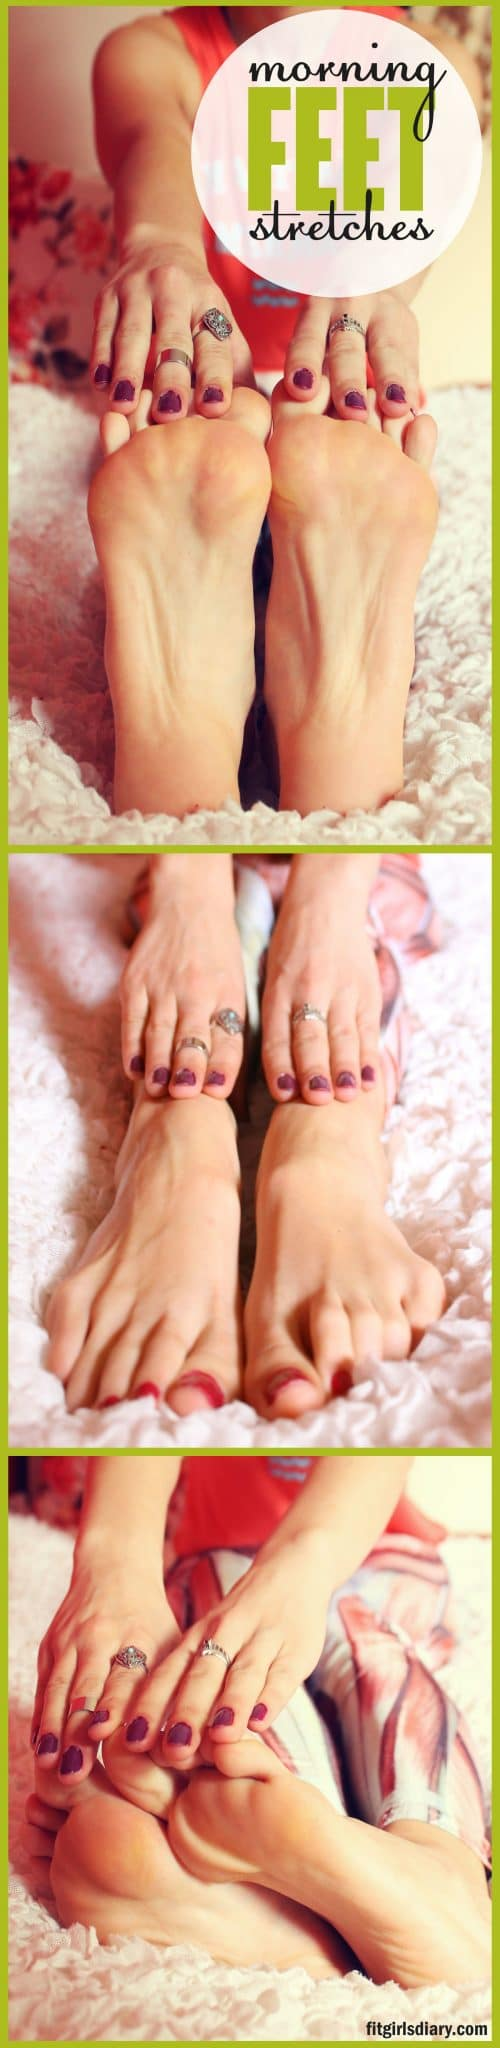 morning feet stretches - 15 Fit Girls Morning Rituals - Healthy Habits That Changed My Life